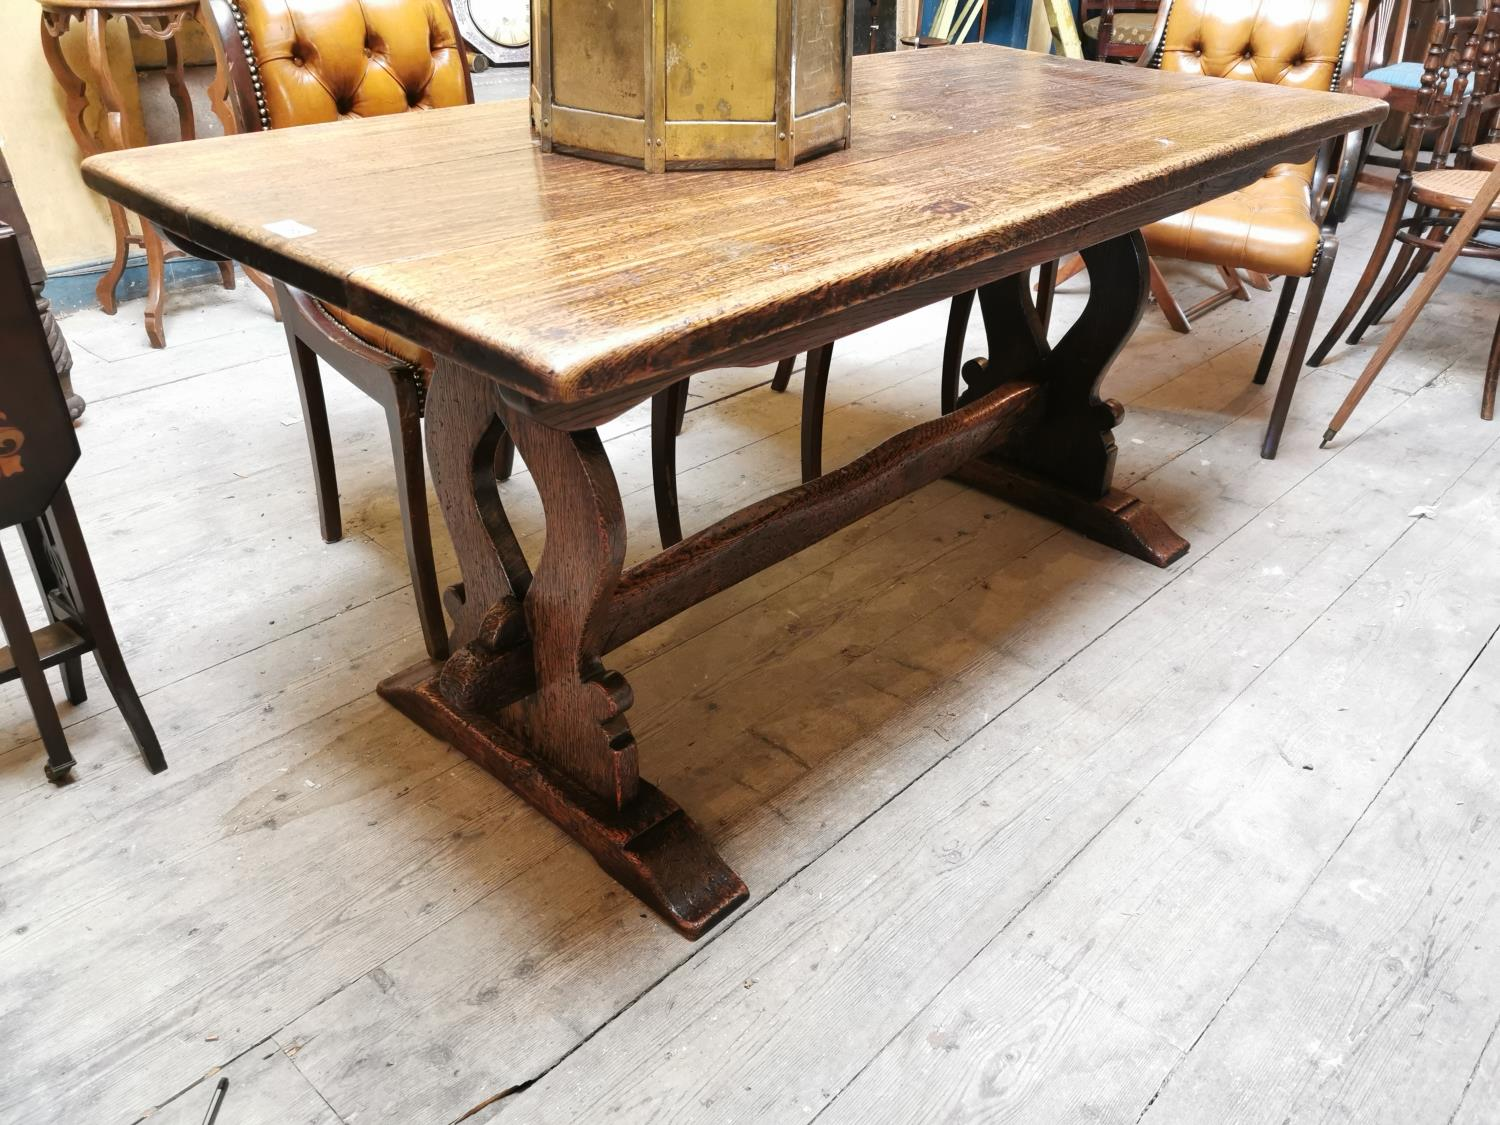 Early 20th C. oak refectory table.